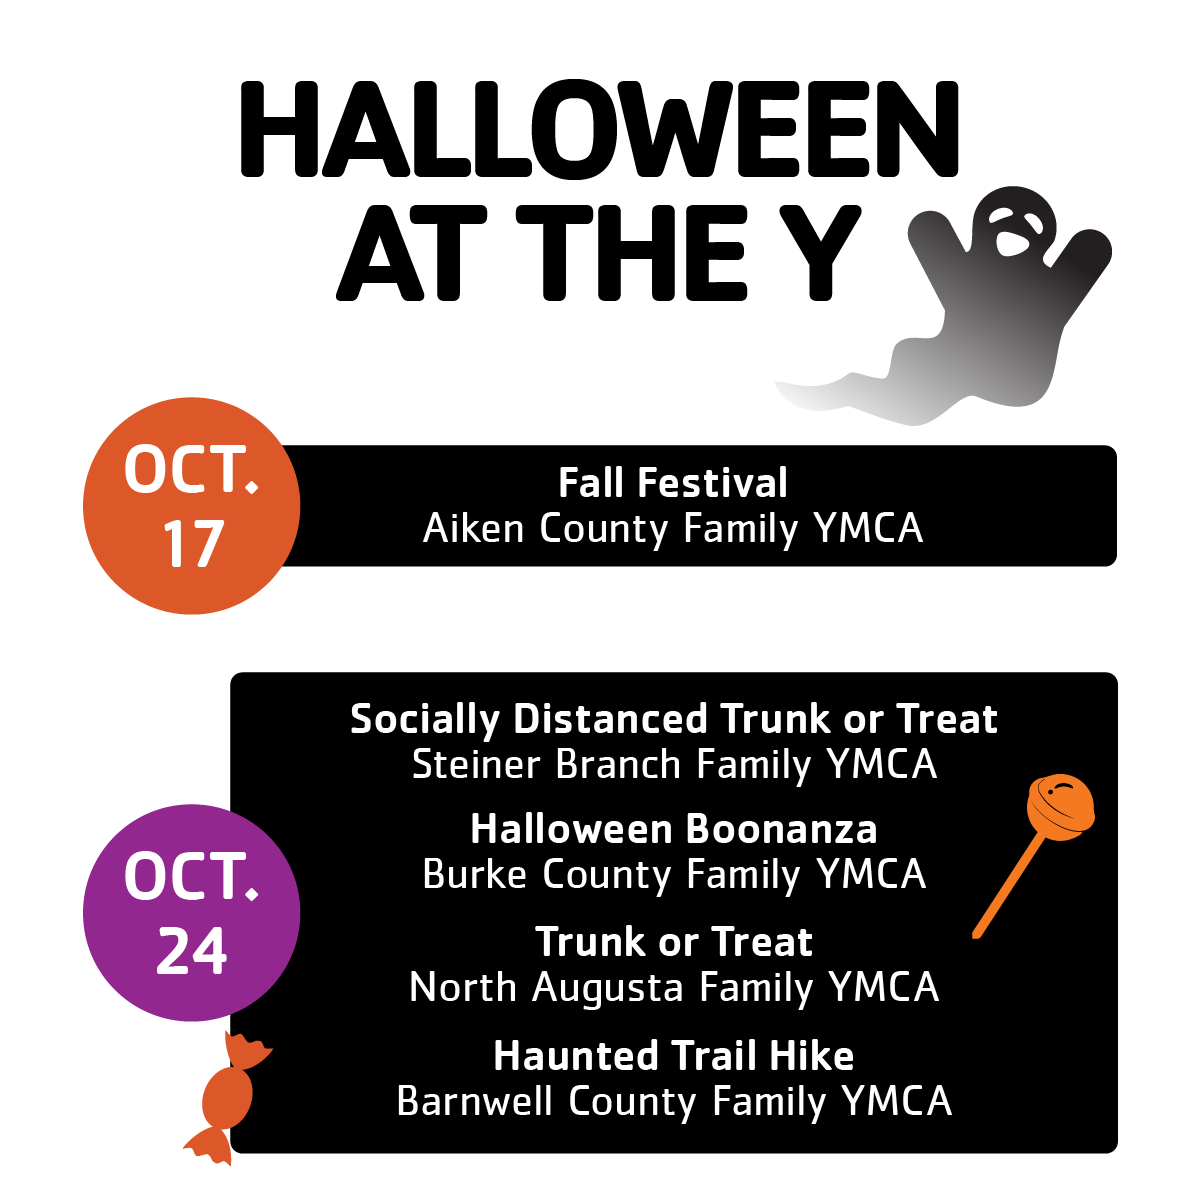 Halloween Events at the Y 1